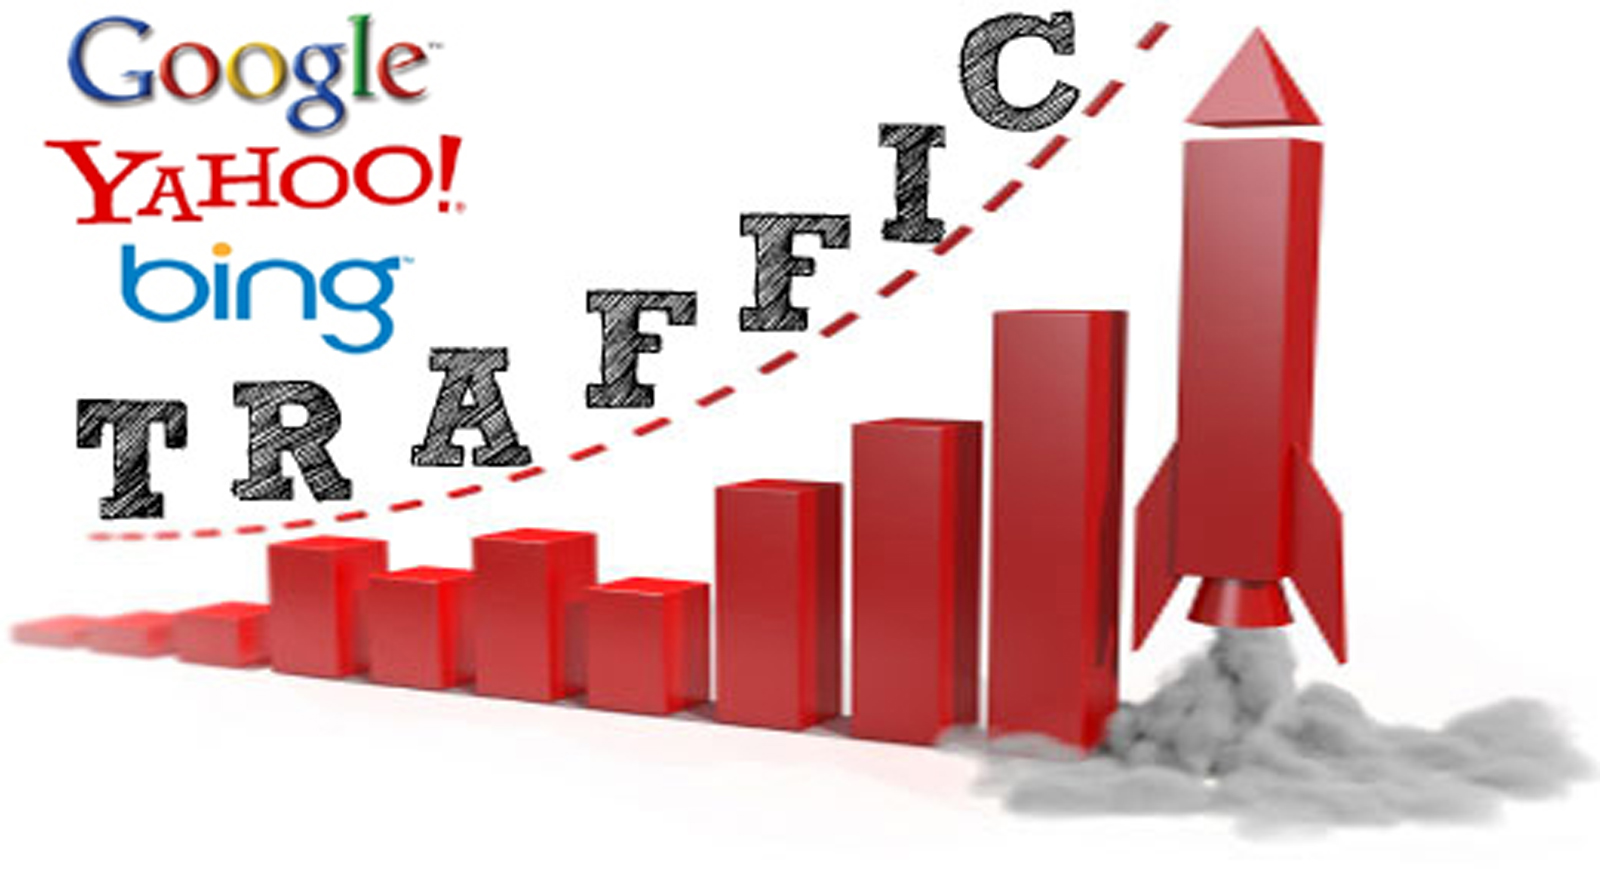 Graph for the growing website traffic